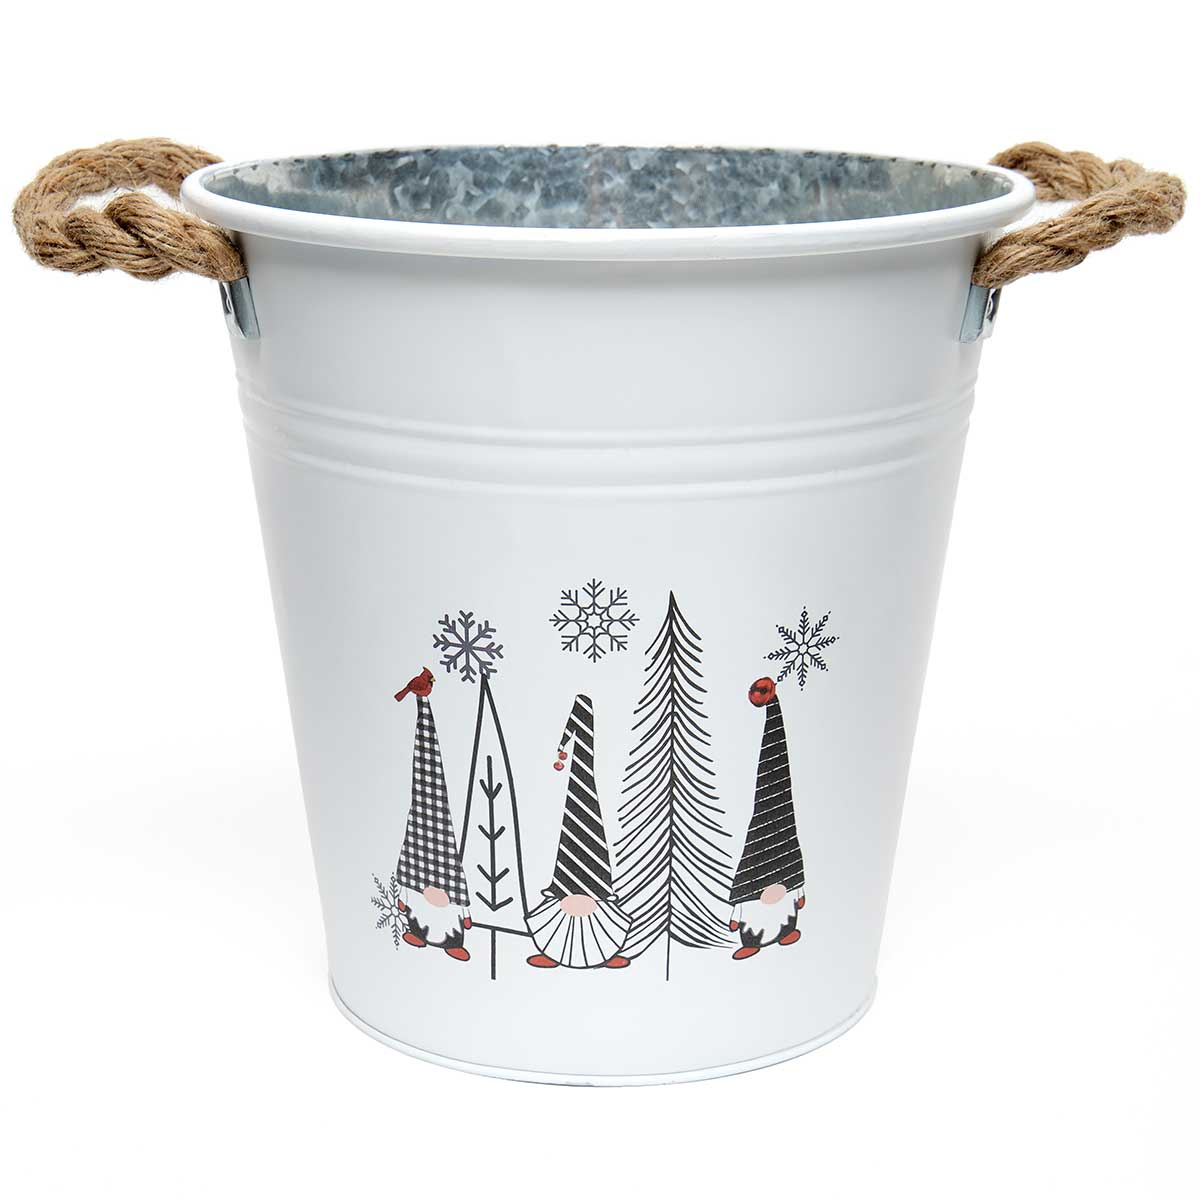 GNOMES AND TREES METAL BUCKET WHITE/BLACK WITH